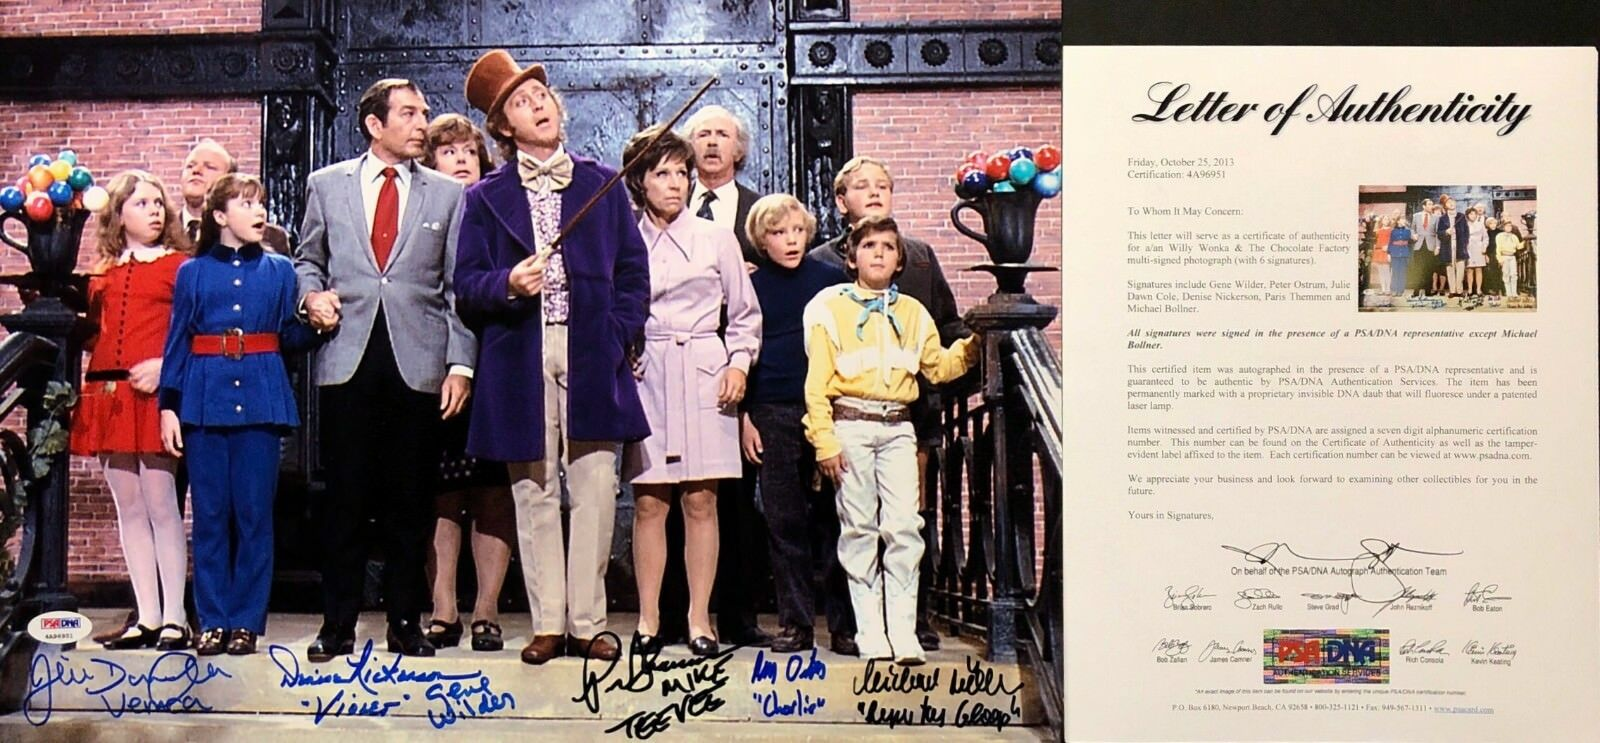 Gene Wilder Dawn Cole Michael Bollner Signed Willie Wonka 12x17 Photo PSA